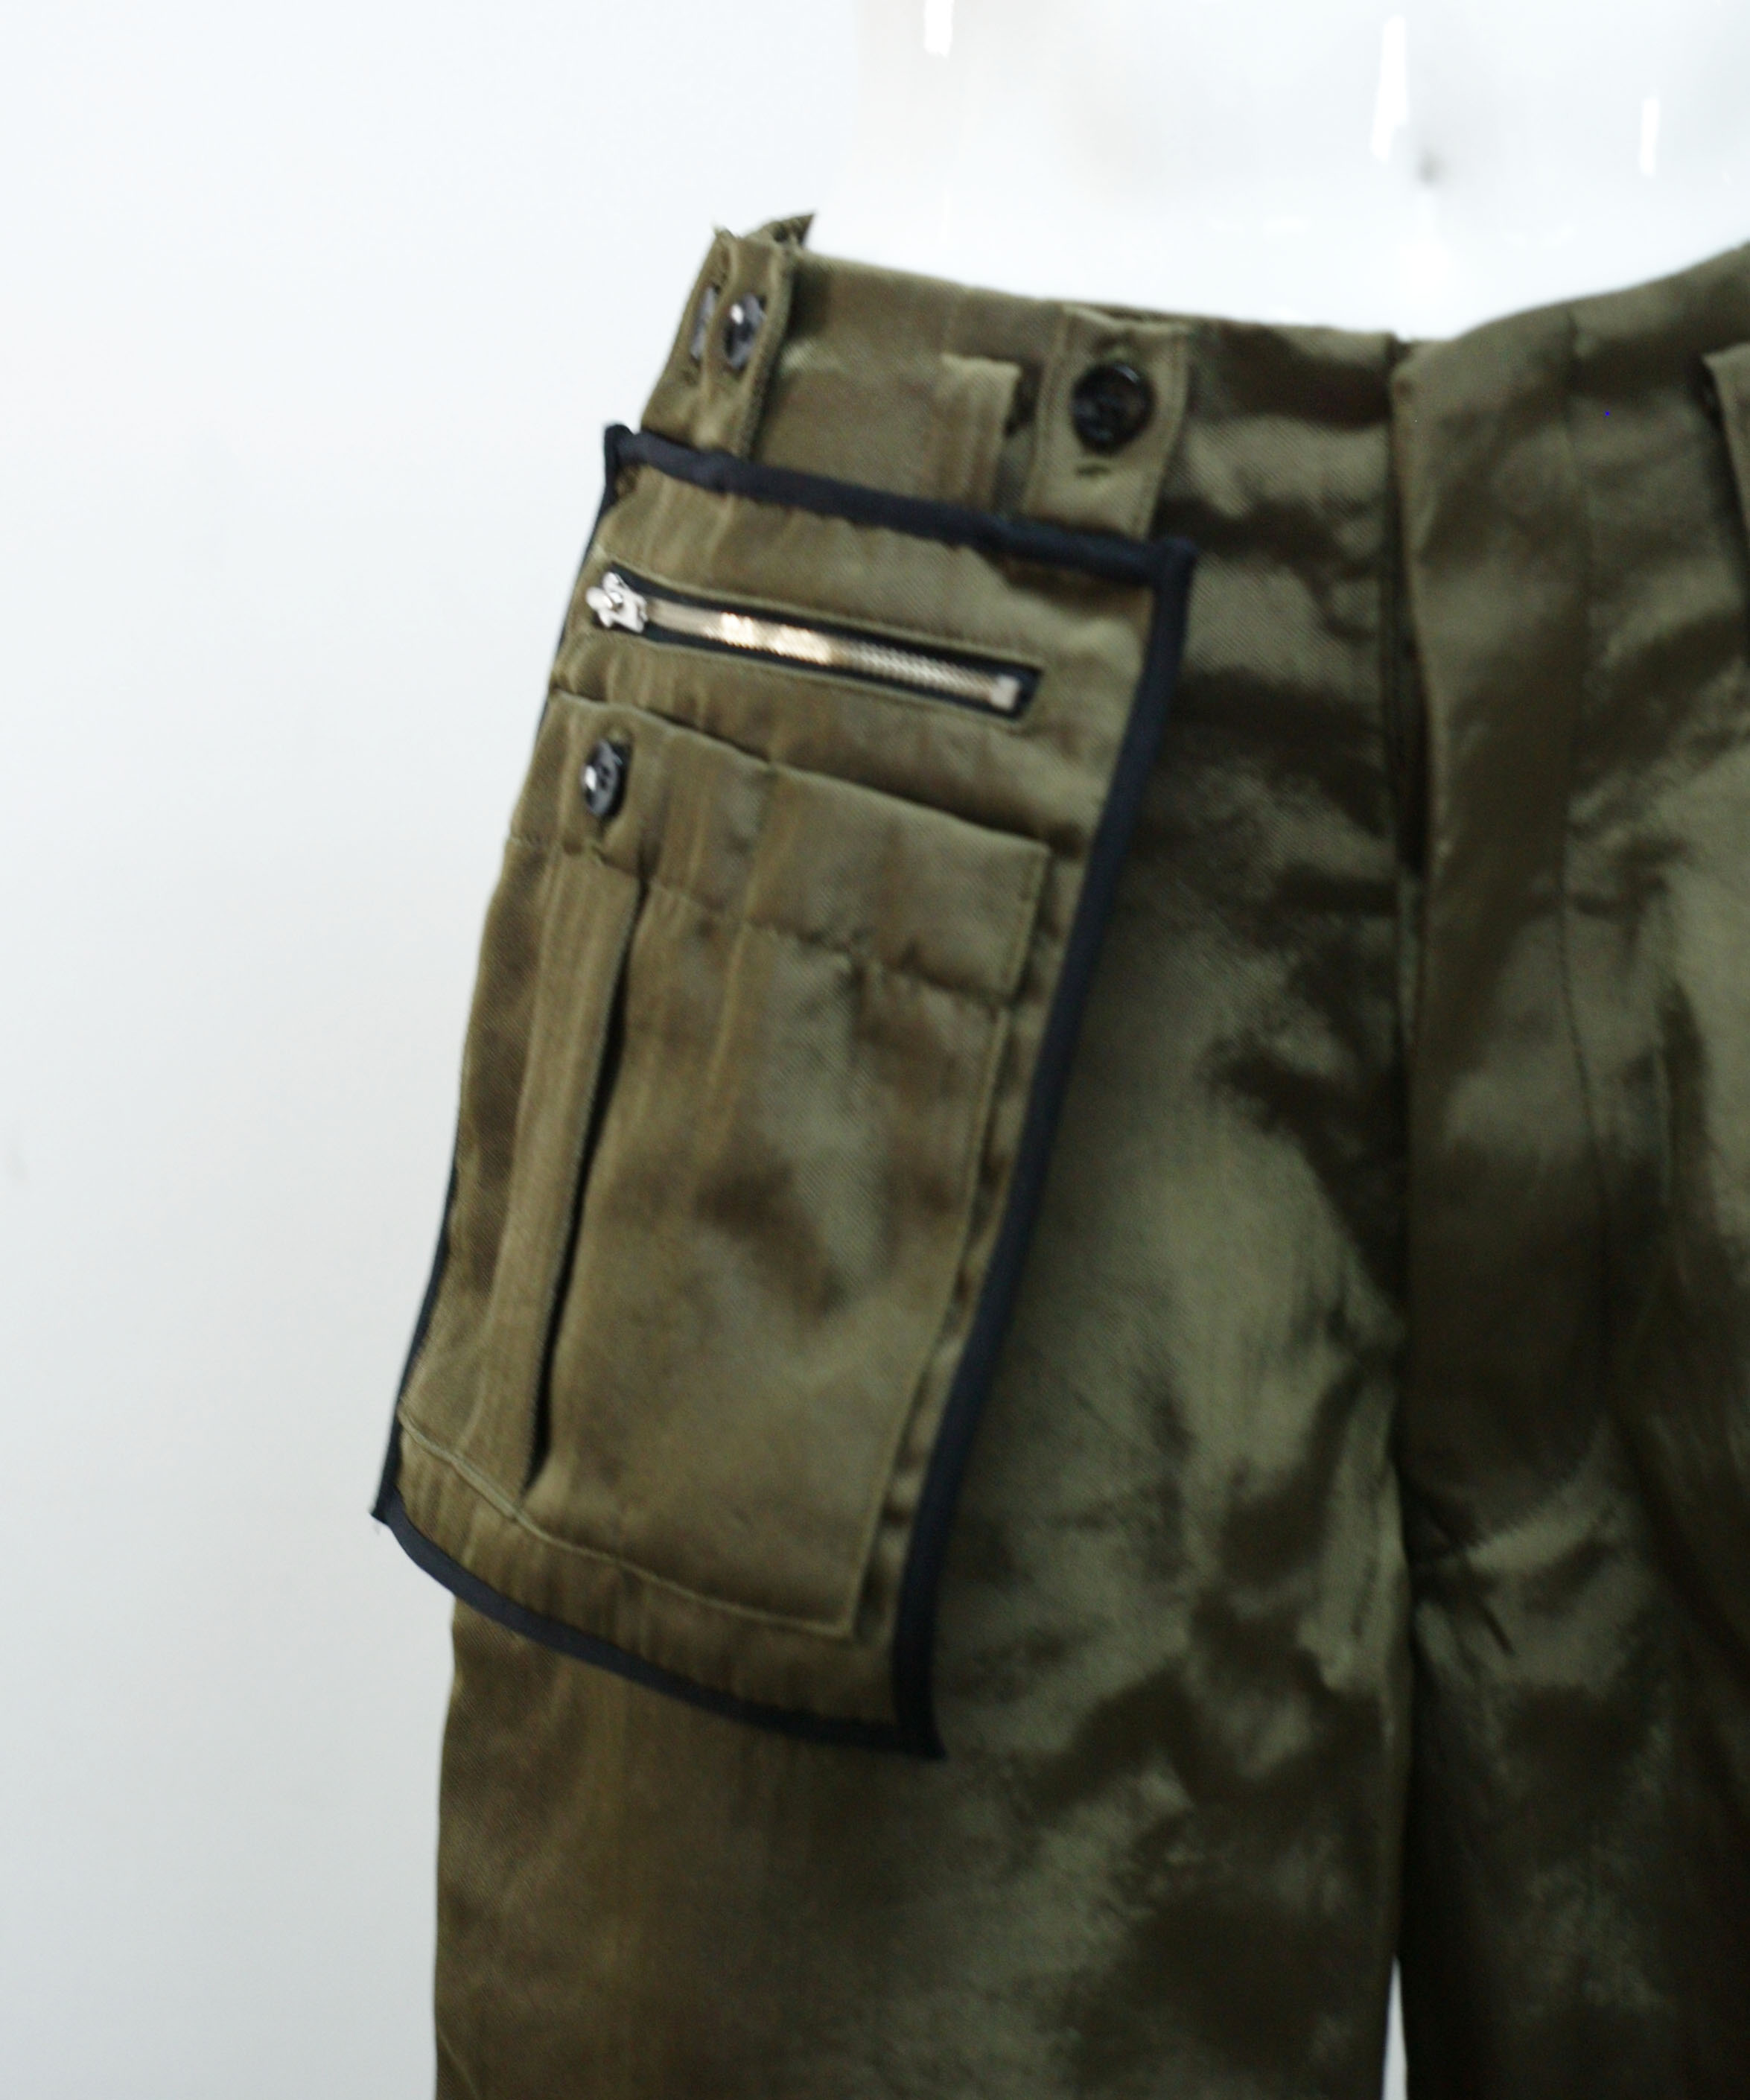 amachi. DETACHIABLE POCKET WORK PANTS